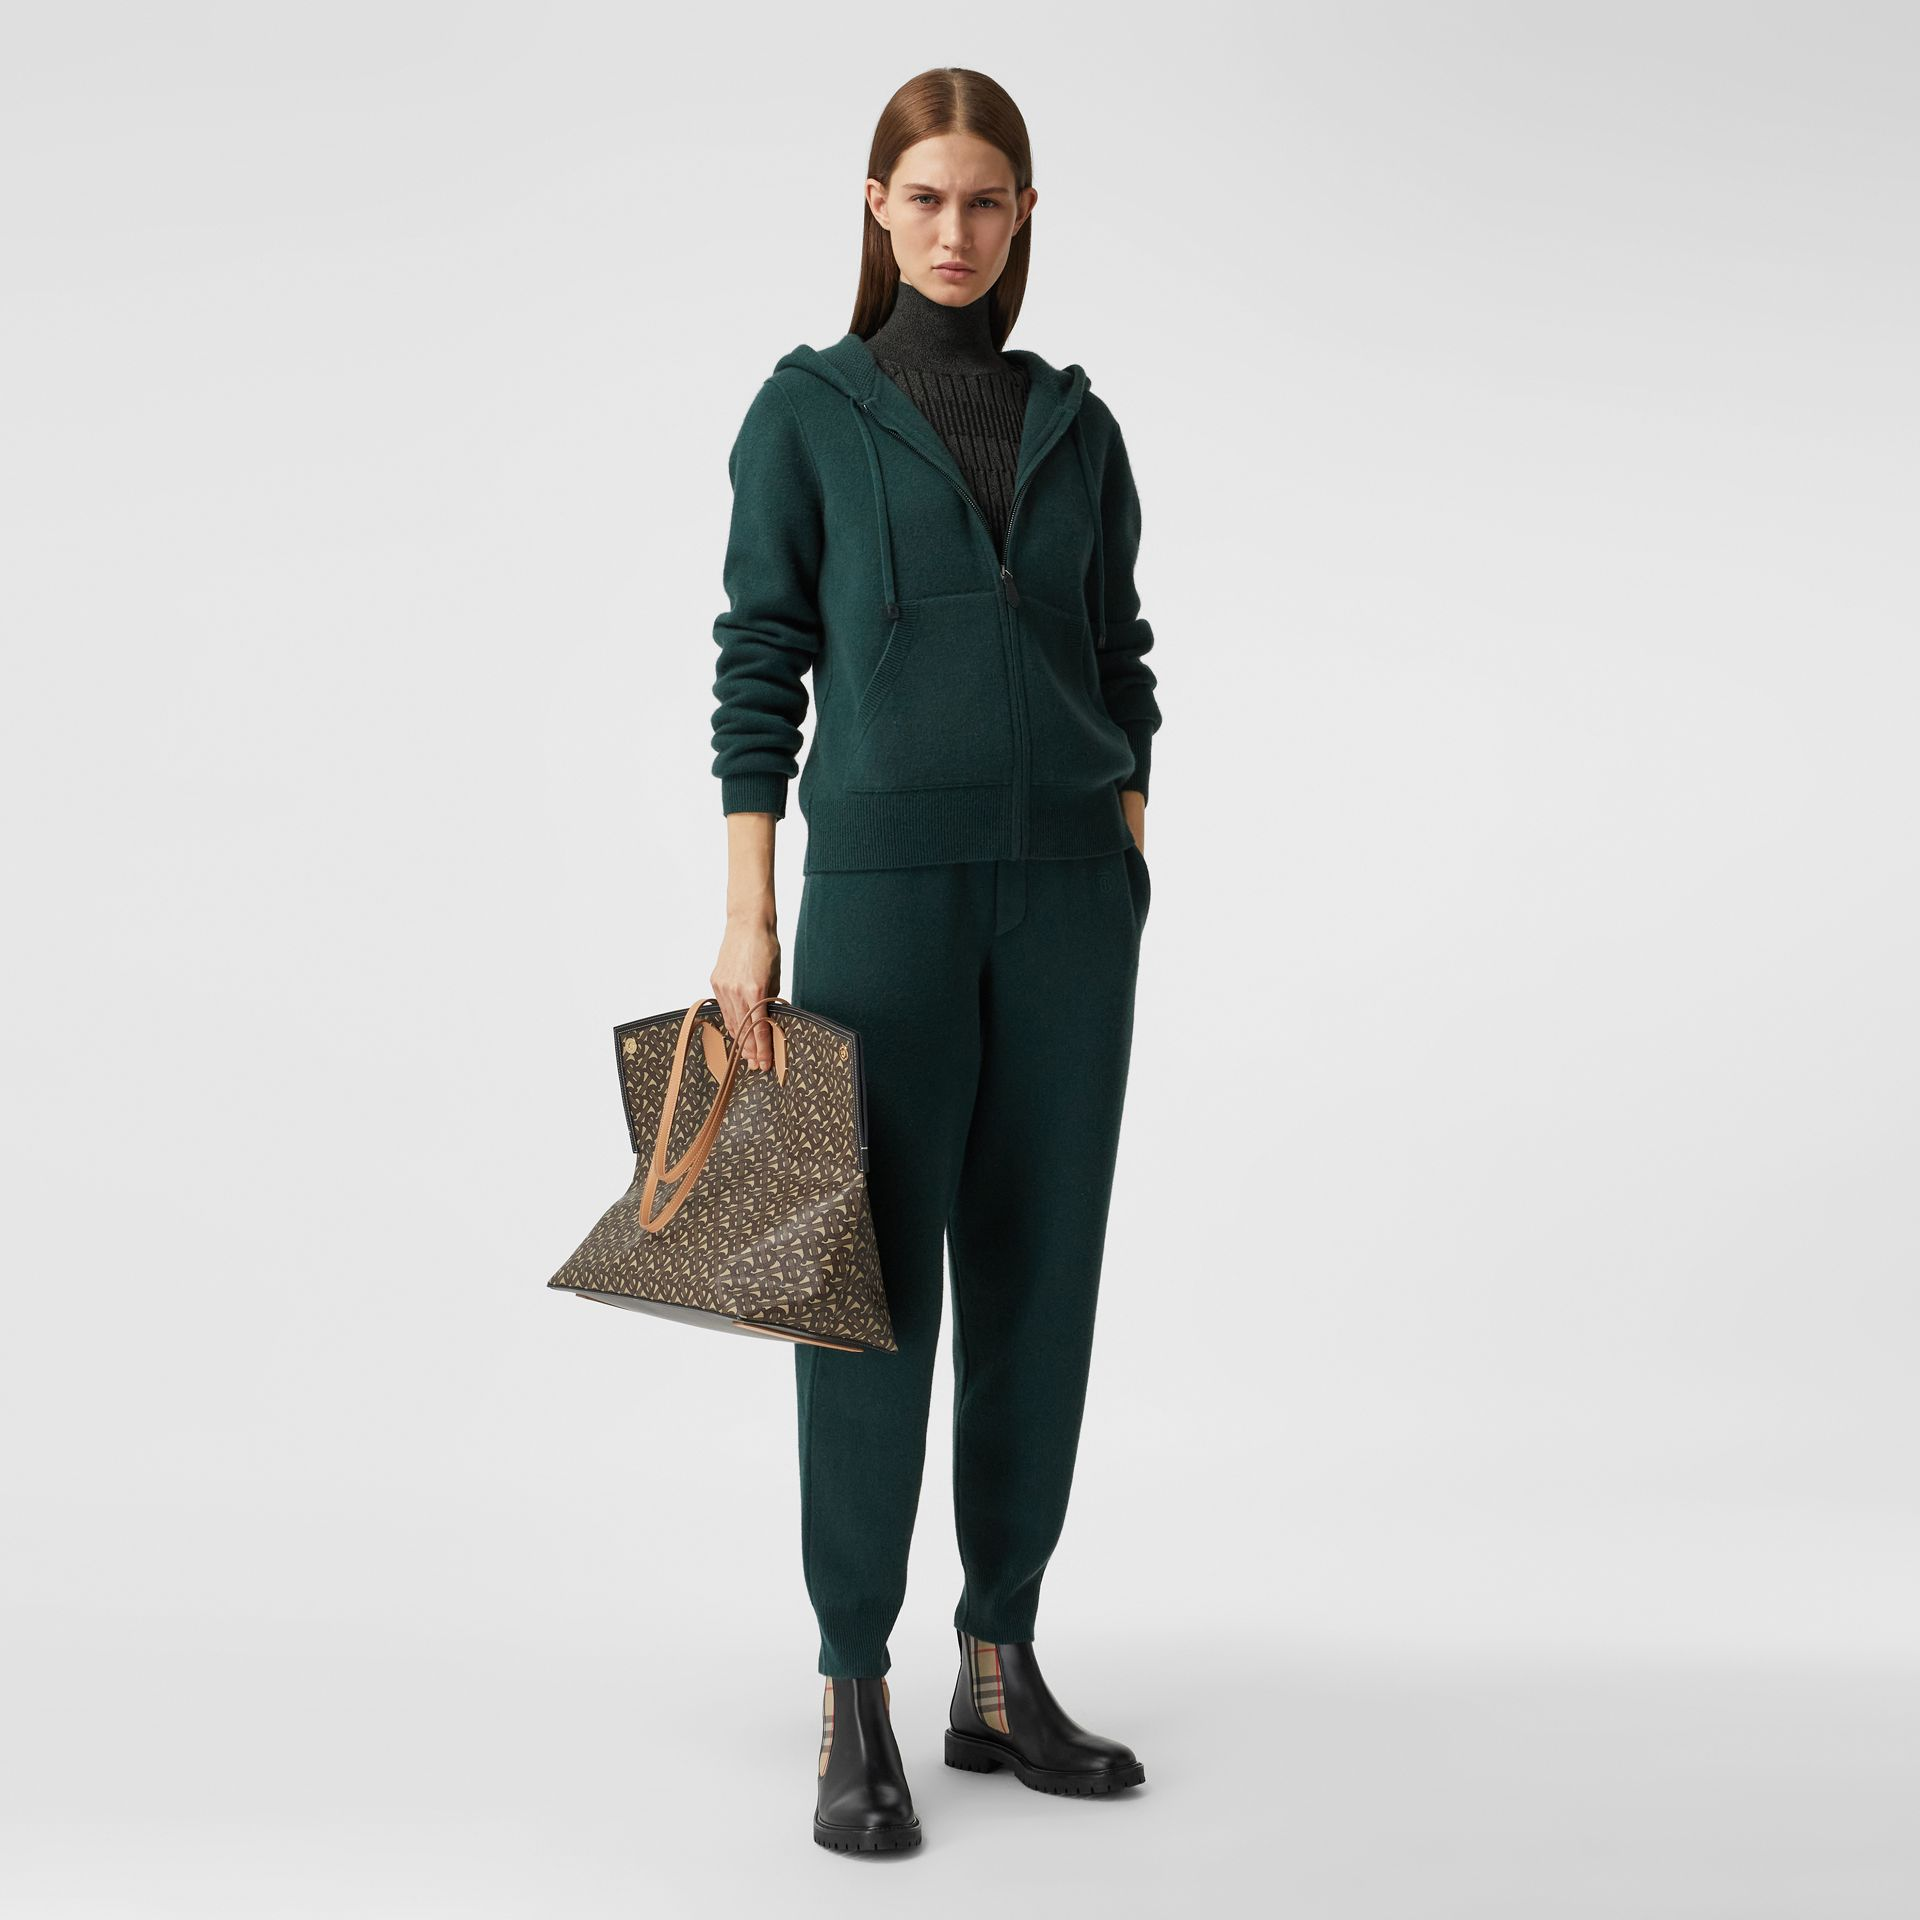 Monogram Motif Cashmere Blend Jogging Pants in Bottle Green - Women | Burberry - gallery image 0